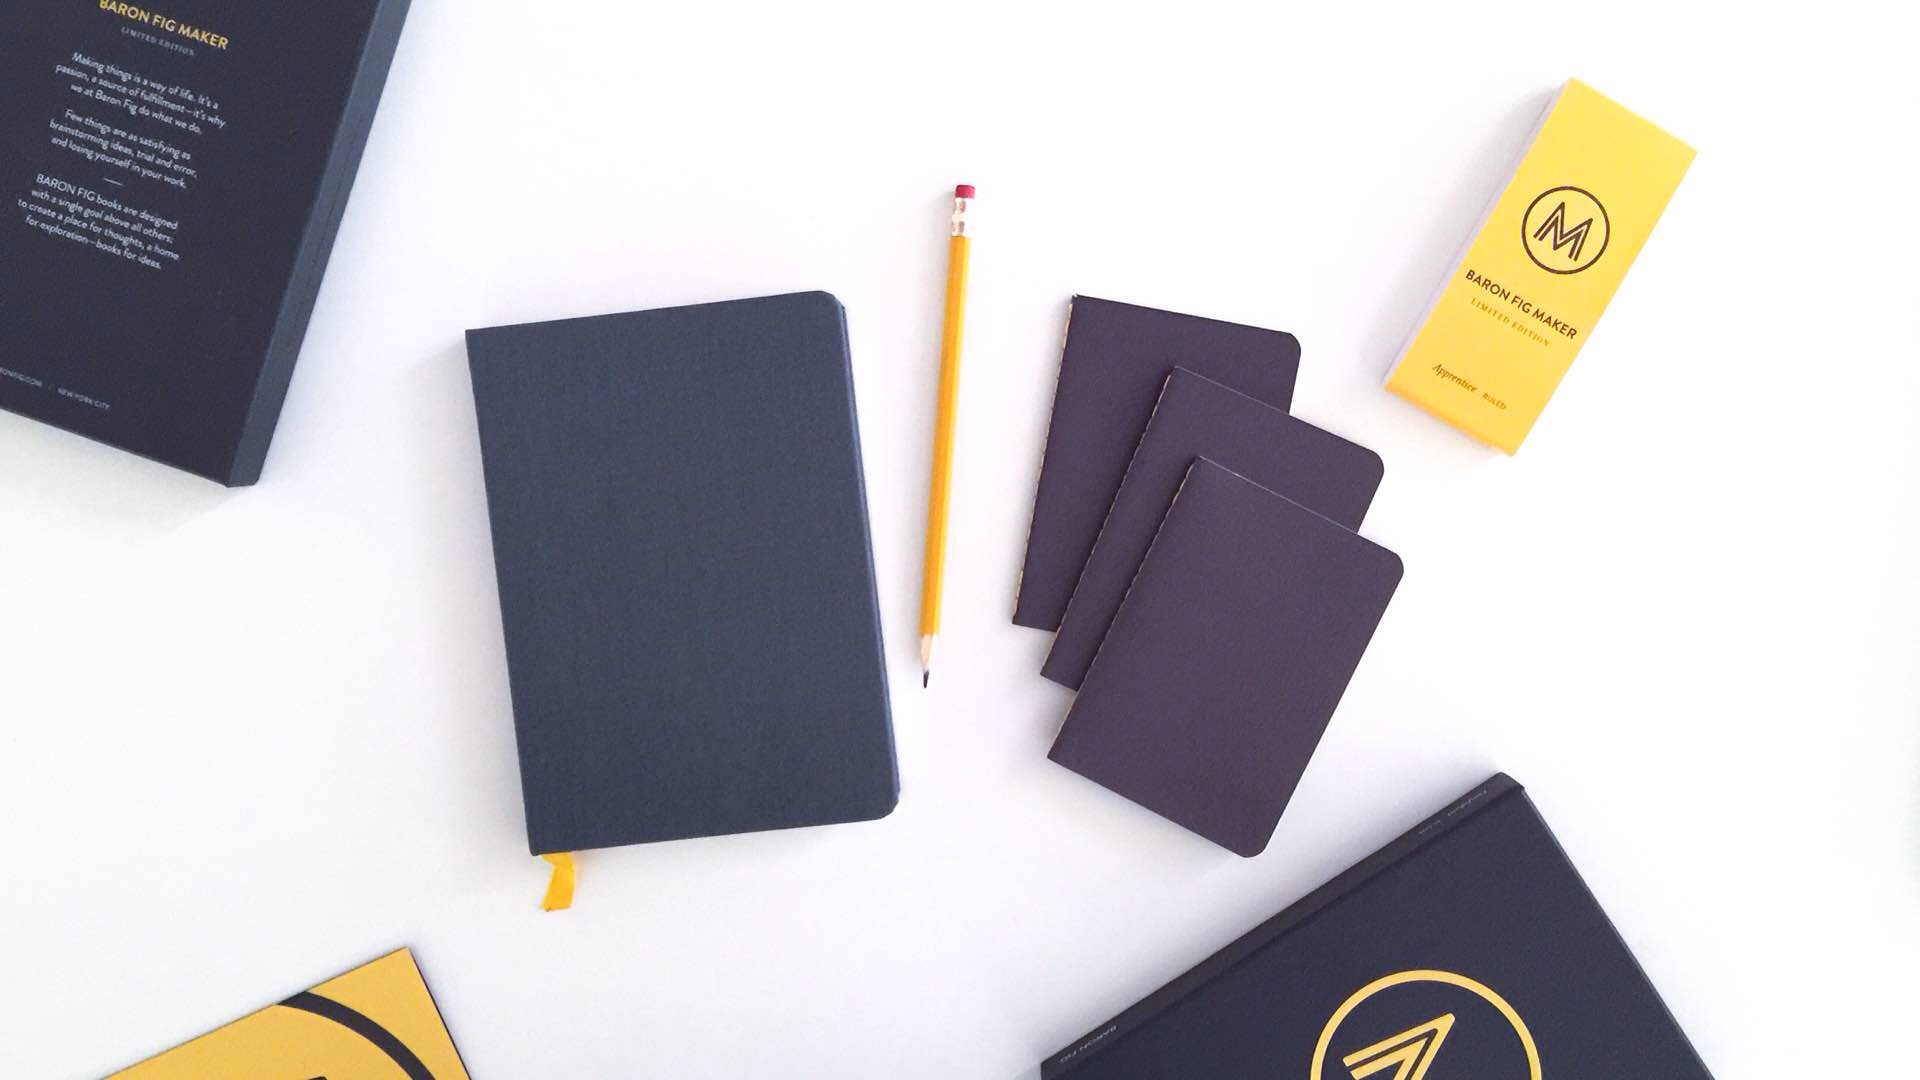 baron-fig-limited-edition-maker-notebooks